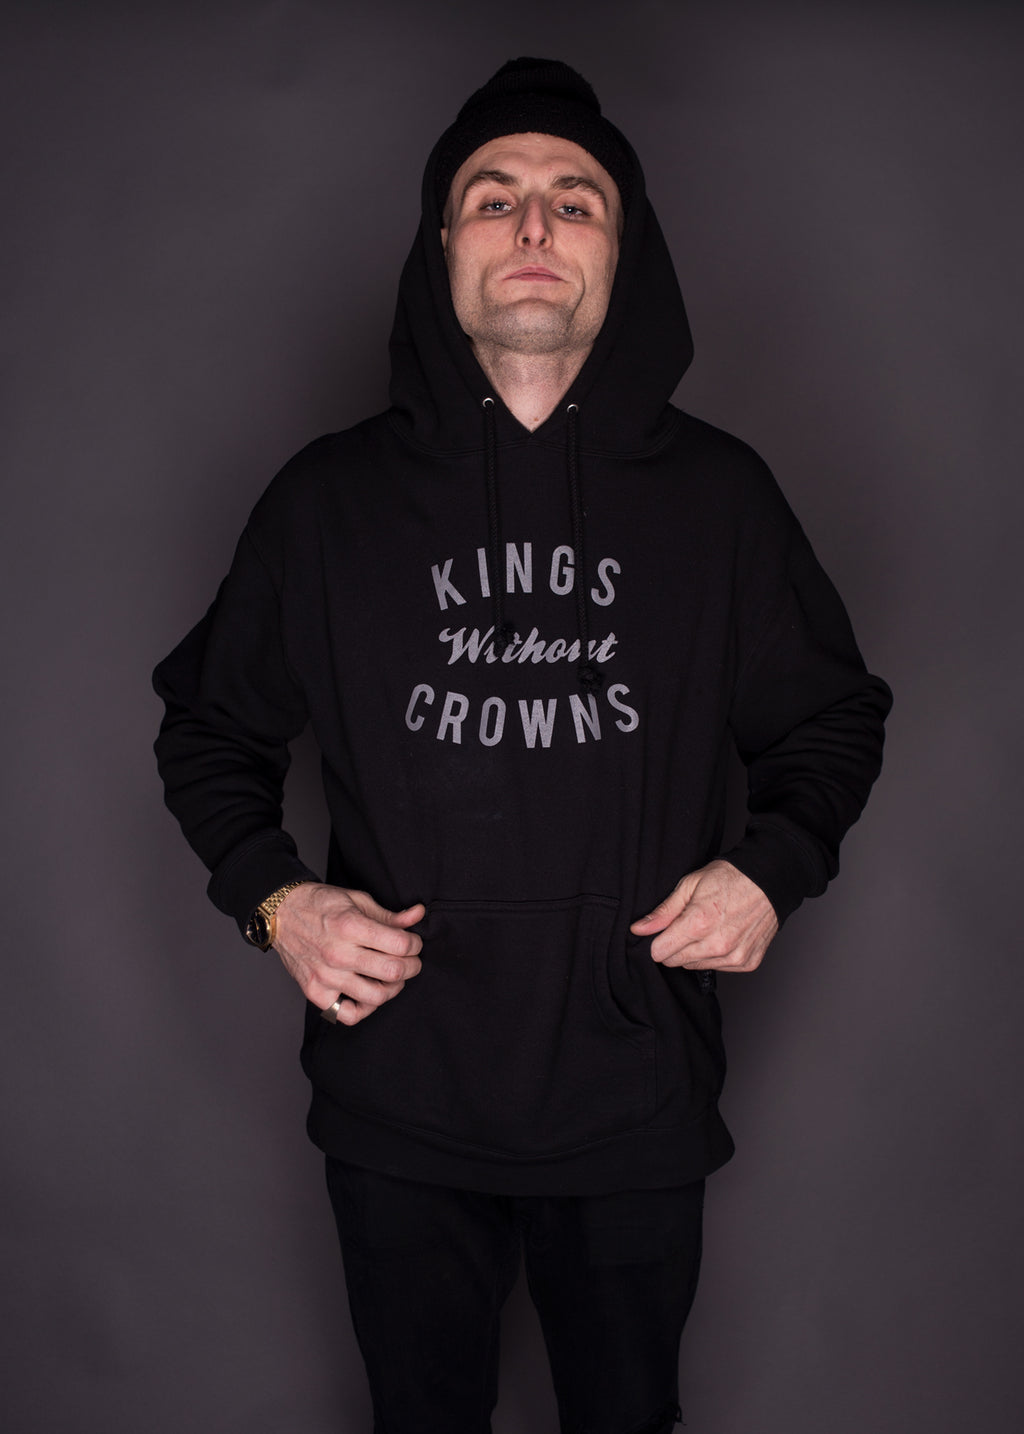 Kings Without Crowns. NYC Stack 3M Reflective Hoodie. Black Color Option.